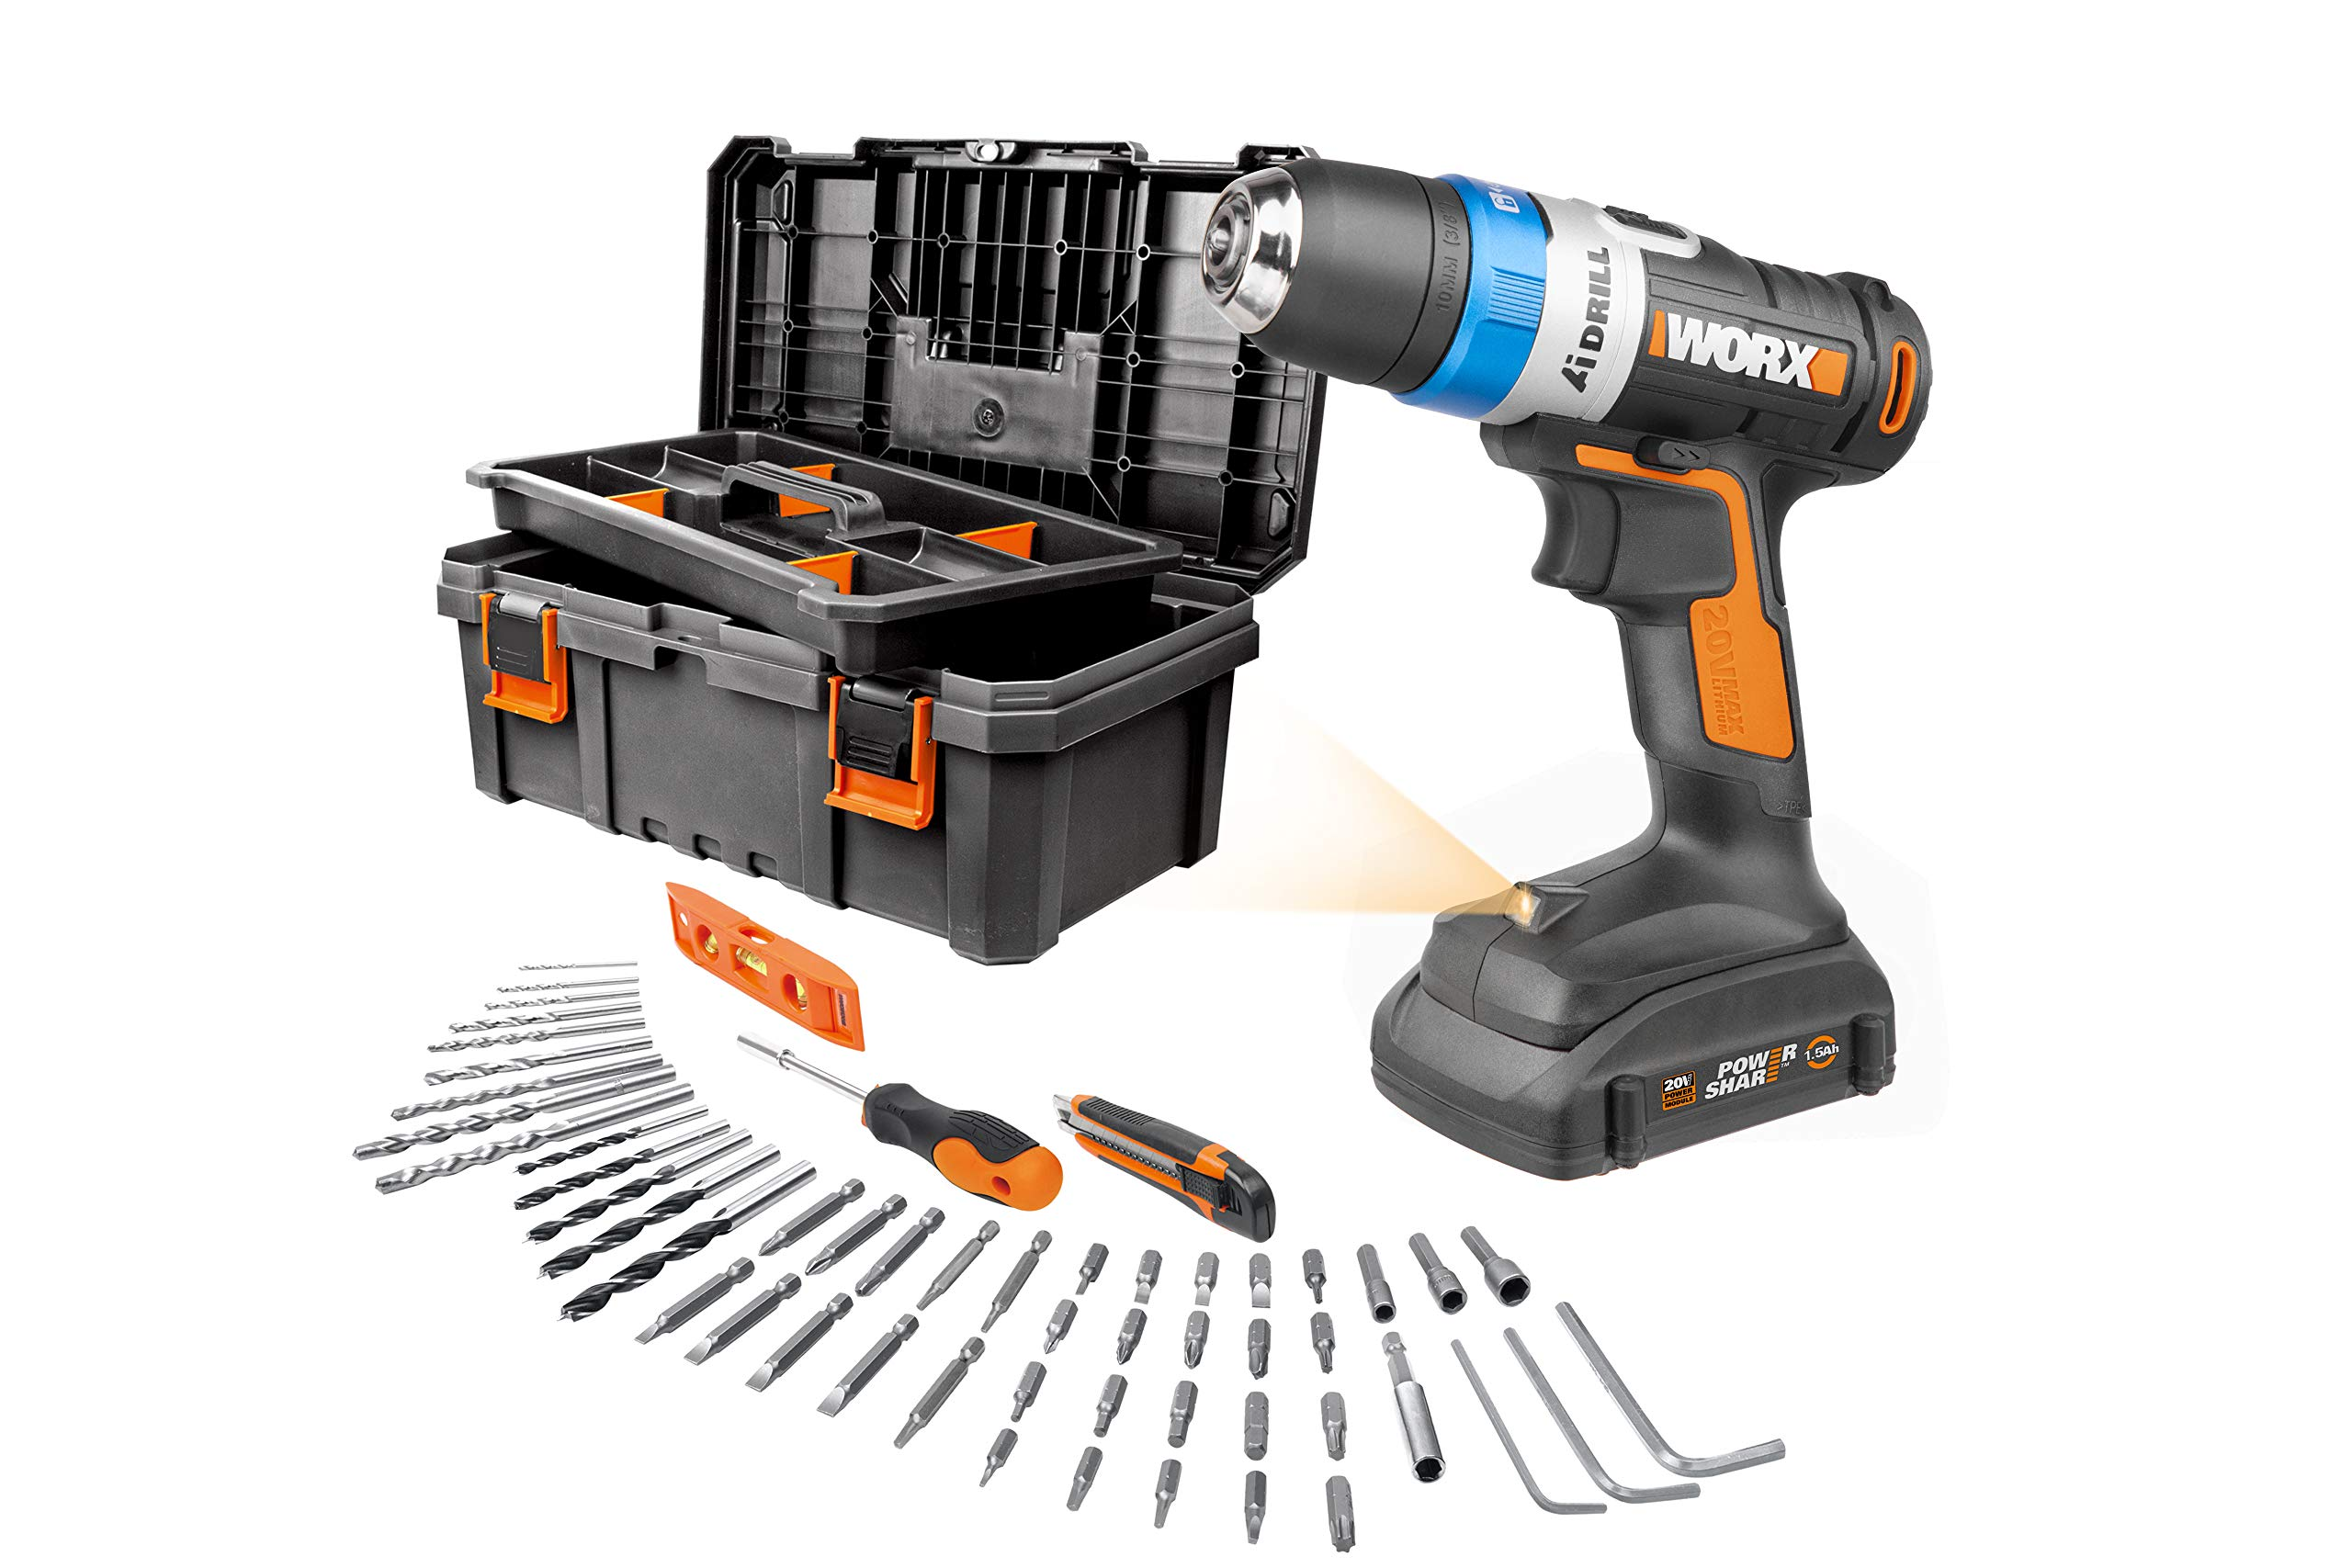 Worx WX178L.3 AI Advanced Intelligence Technology Drill with Accessory Kit and Storage Box